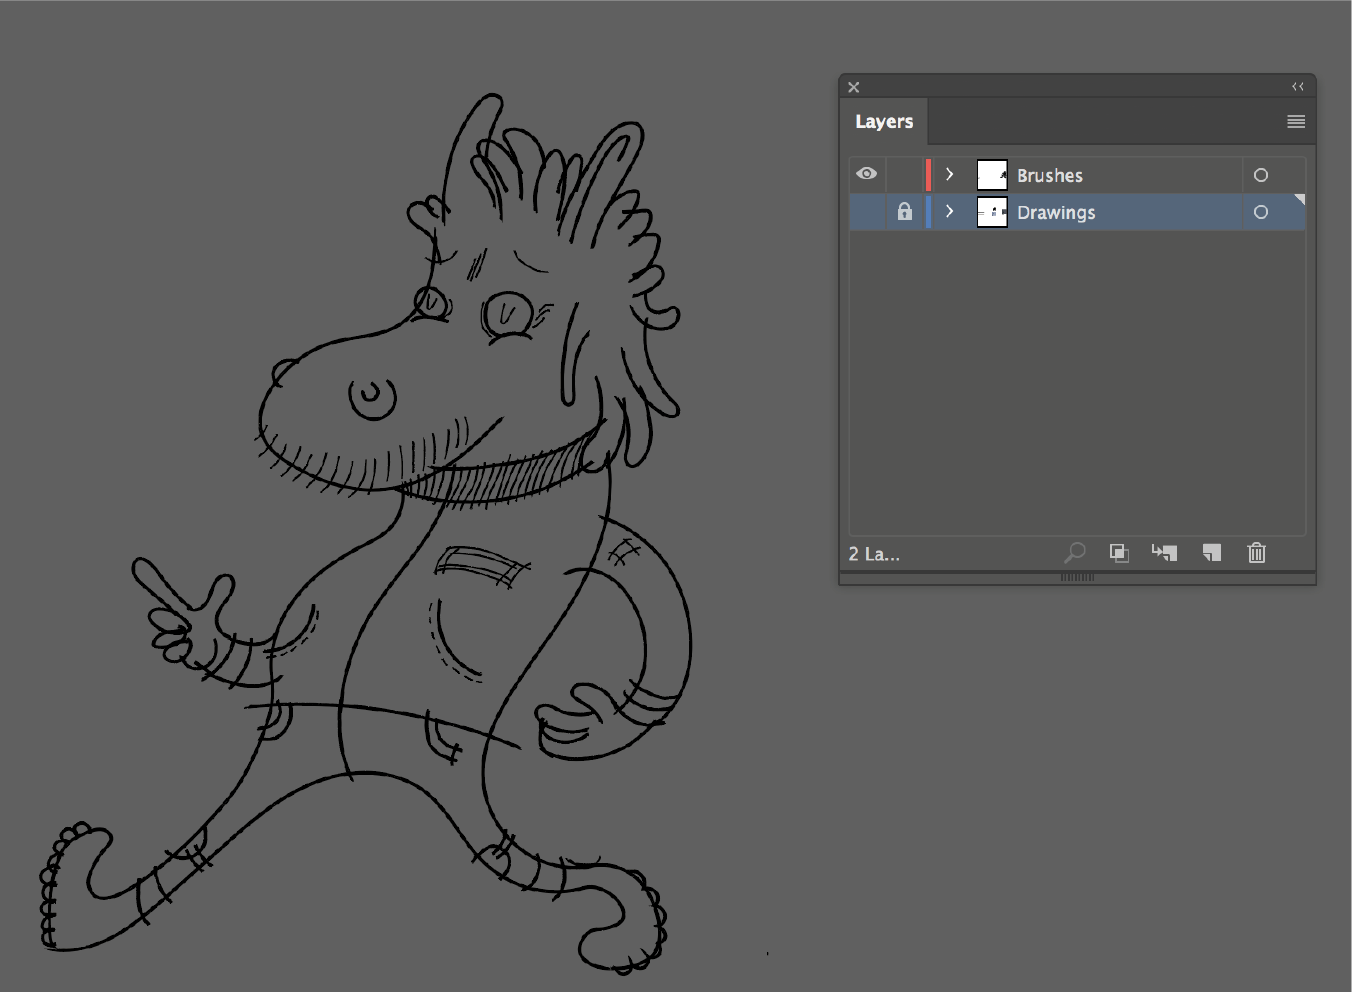 How To Smooth Drawing Lines In Illustrator : Creating a character illustration in illustrator cc with hand